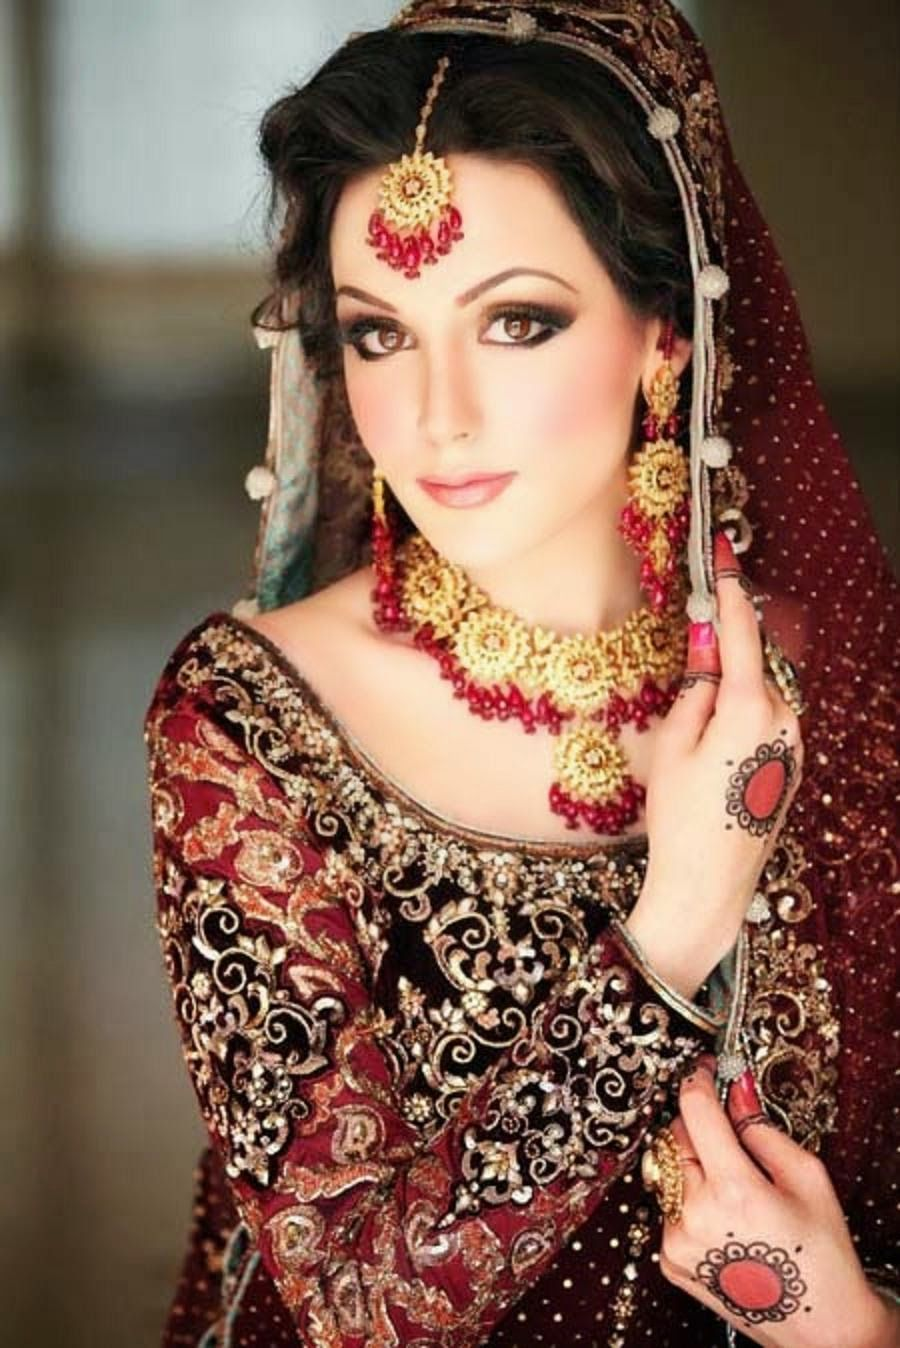 dulhan makeup ideas 2014 for girls hd wallpapers free download